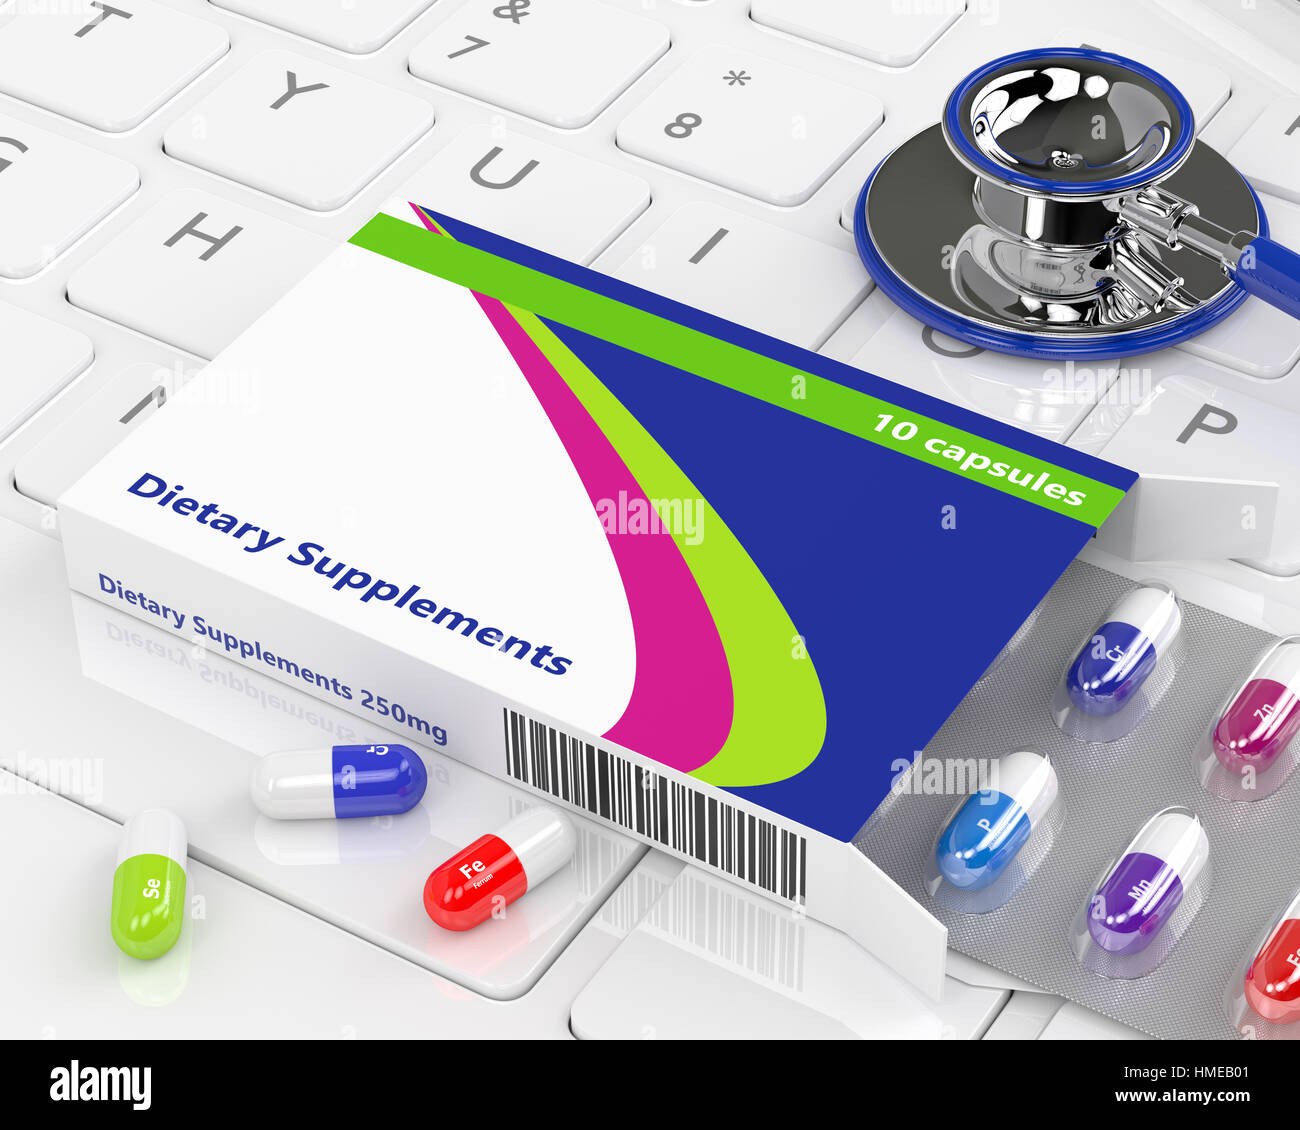 3d rendering of dietary supplements lying with stethoscope on keyboard - Stock Image